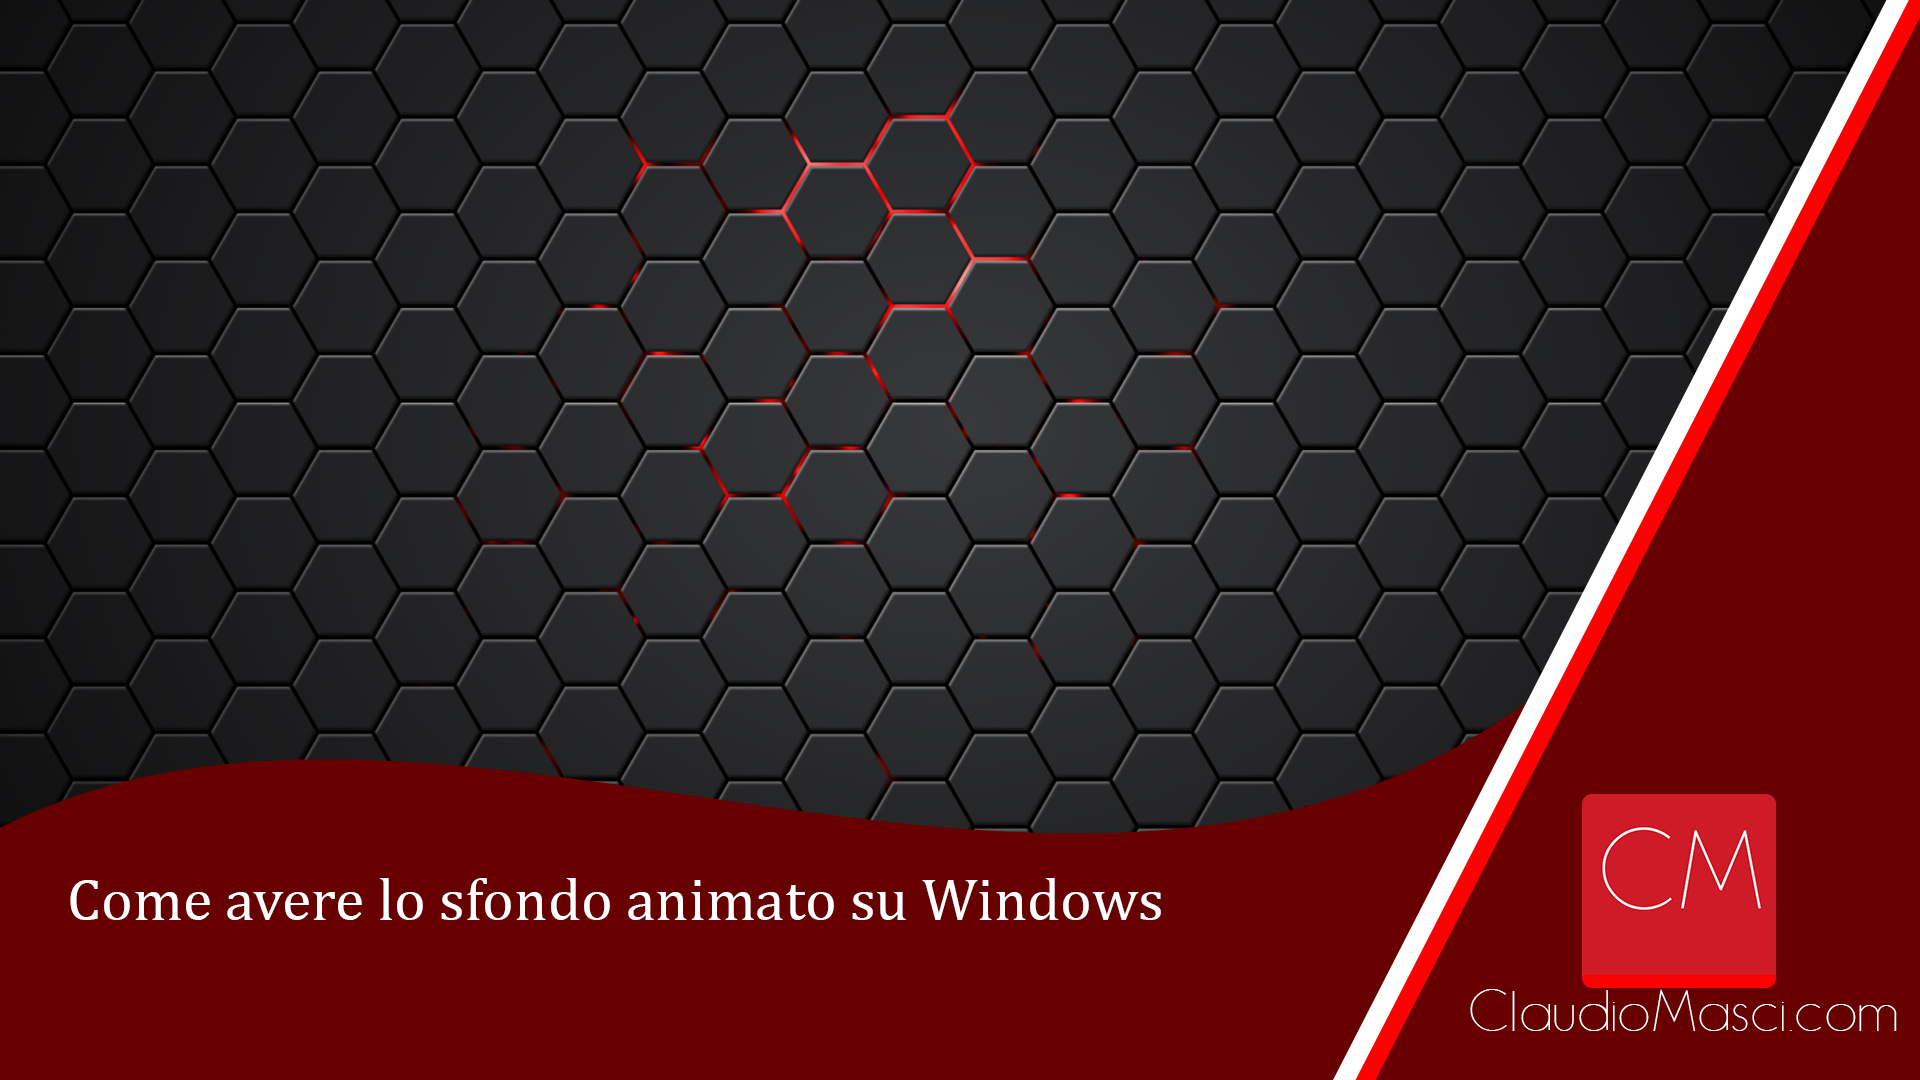 Come avere lo sfondo animato su Windows